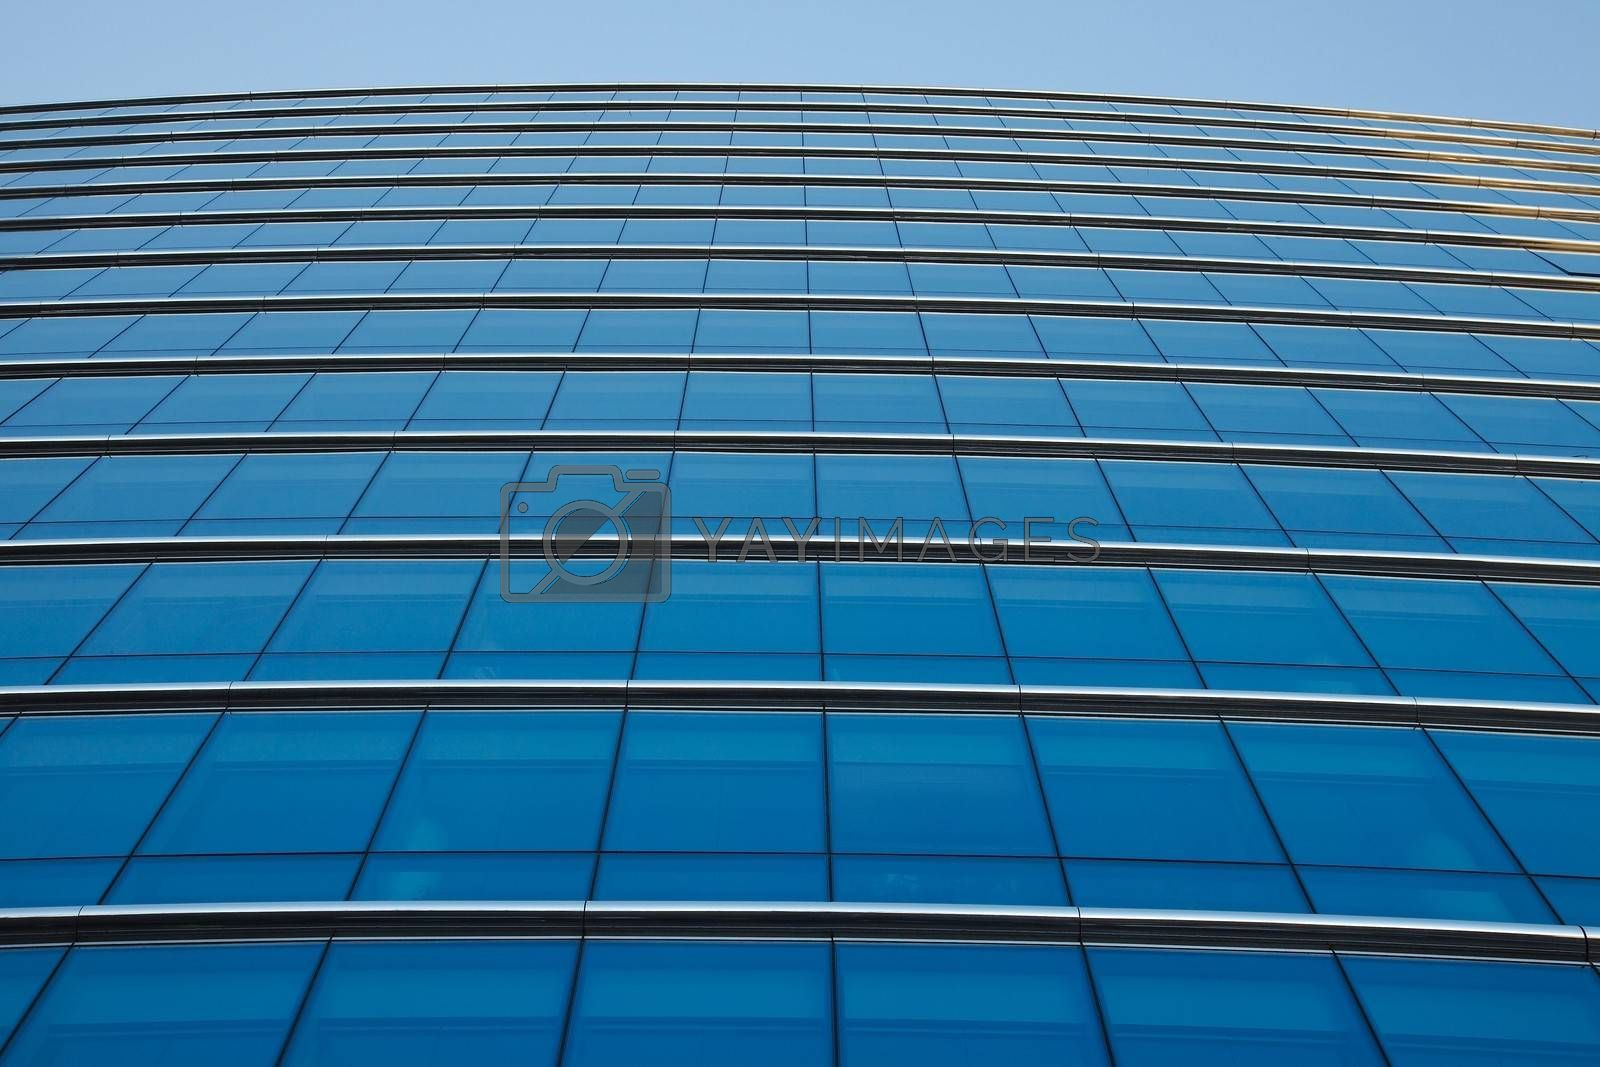 Royalty free image of Office Building by Gudella